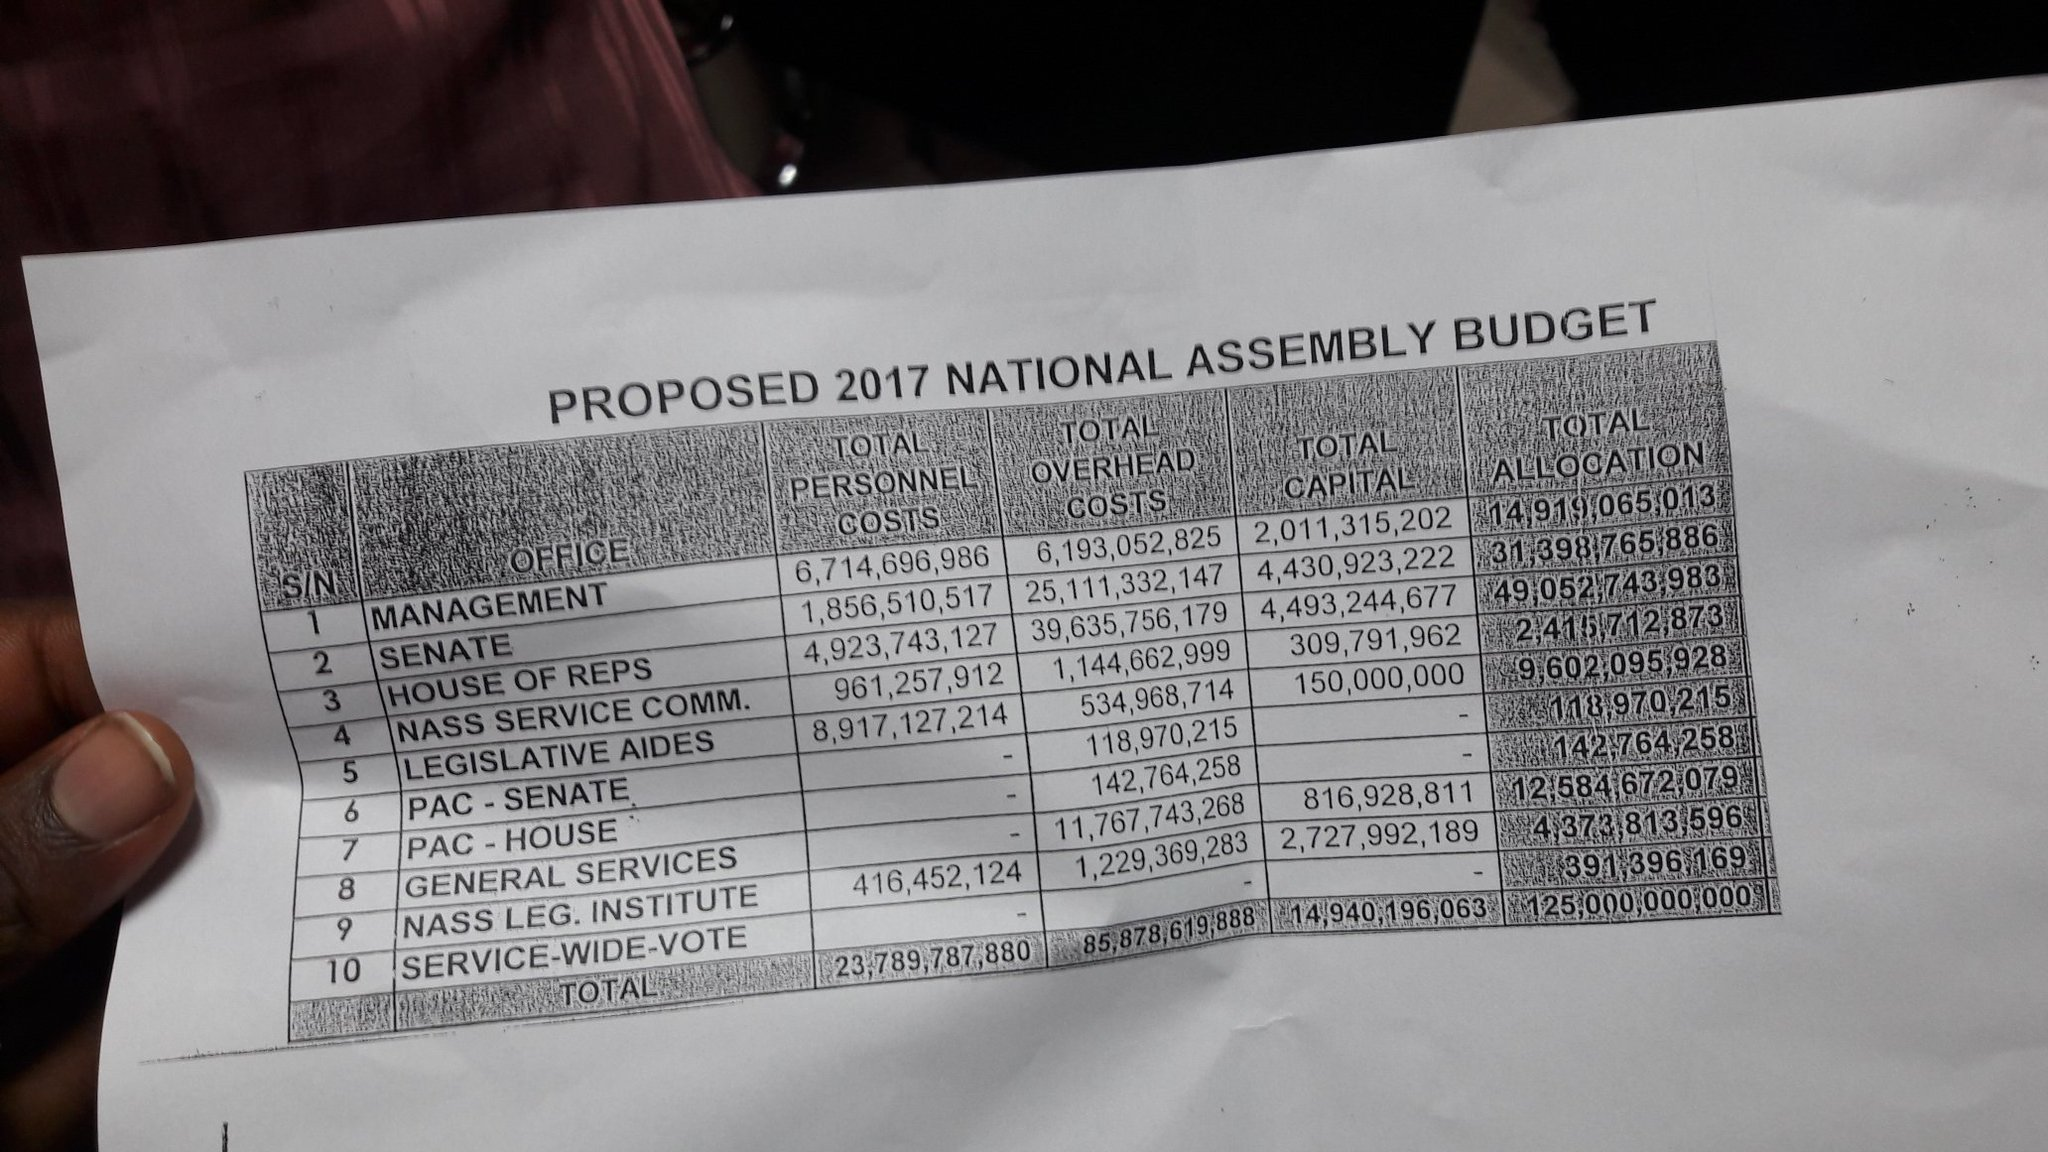 #OpenNASS: National Assembly Opens Its Budget For The First Time In History